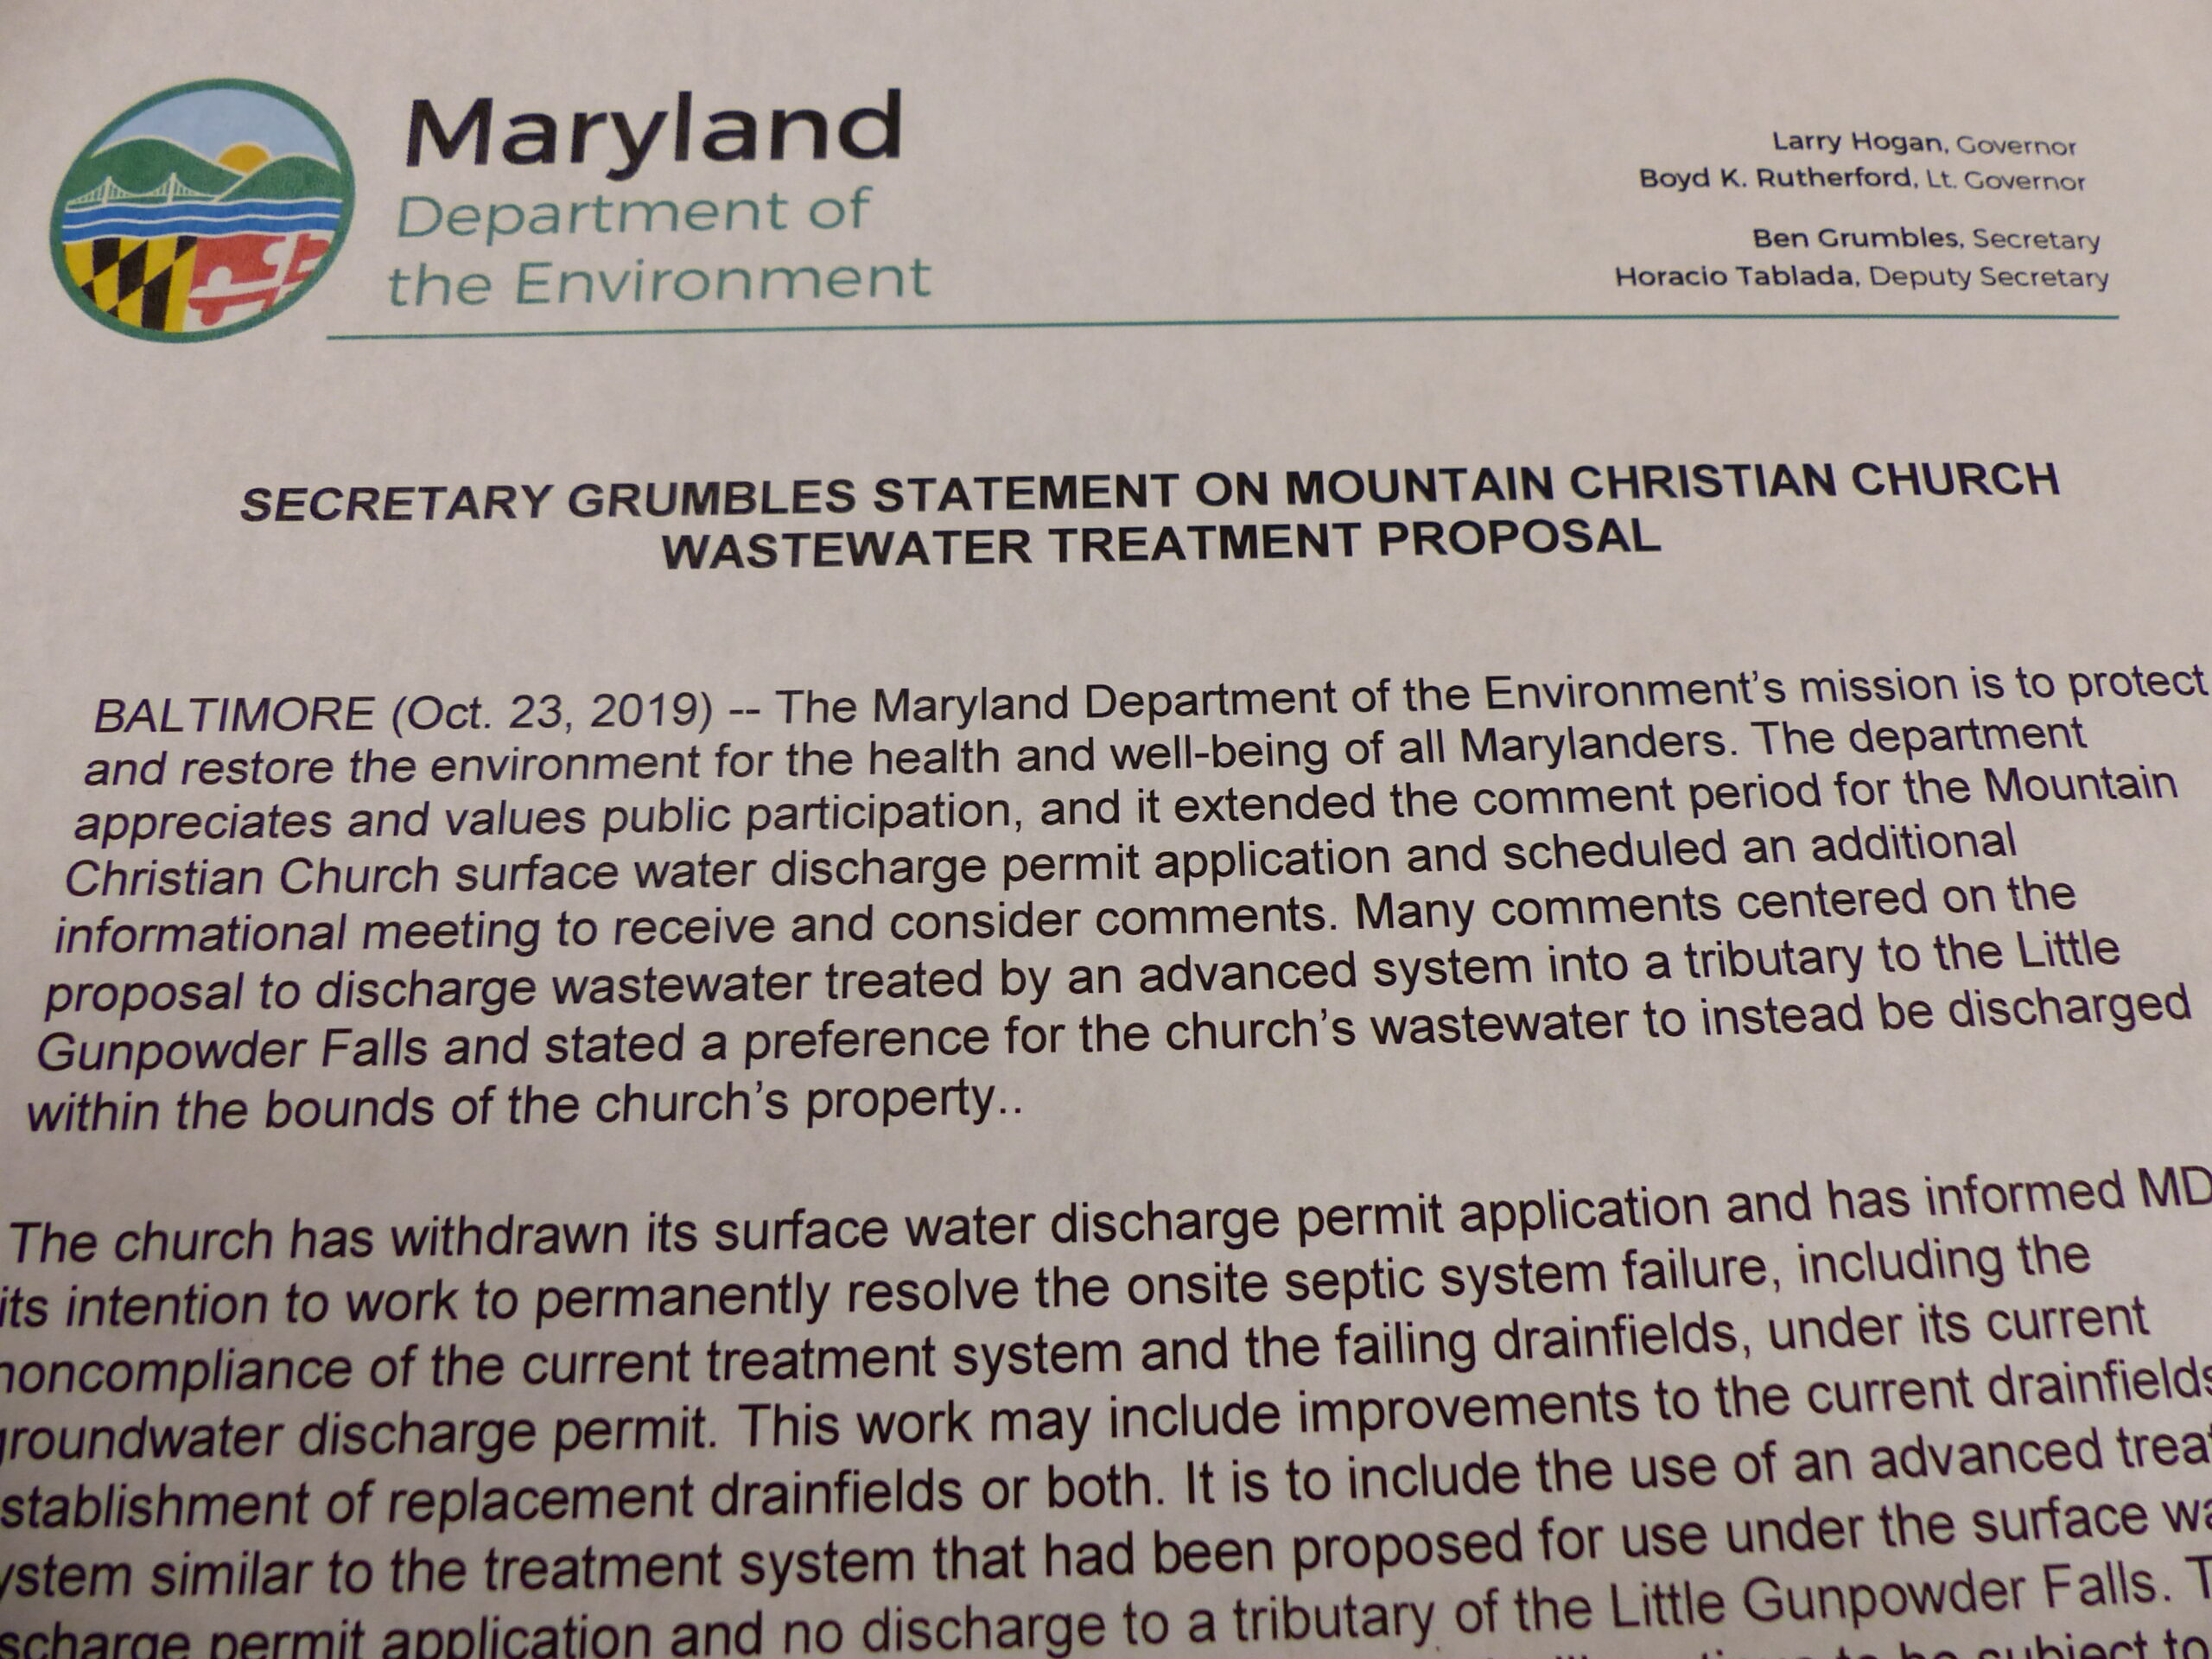 MDE Press Release on Mountain Christian Church Indicates that the  Surface Discharge Permit Application was Withdrawn